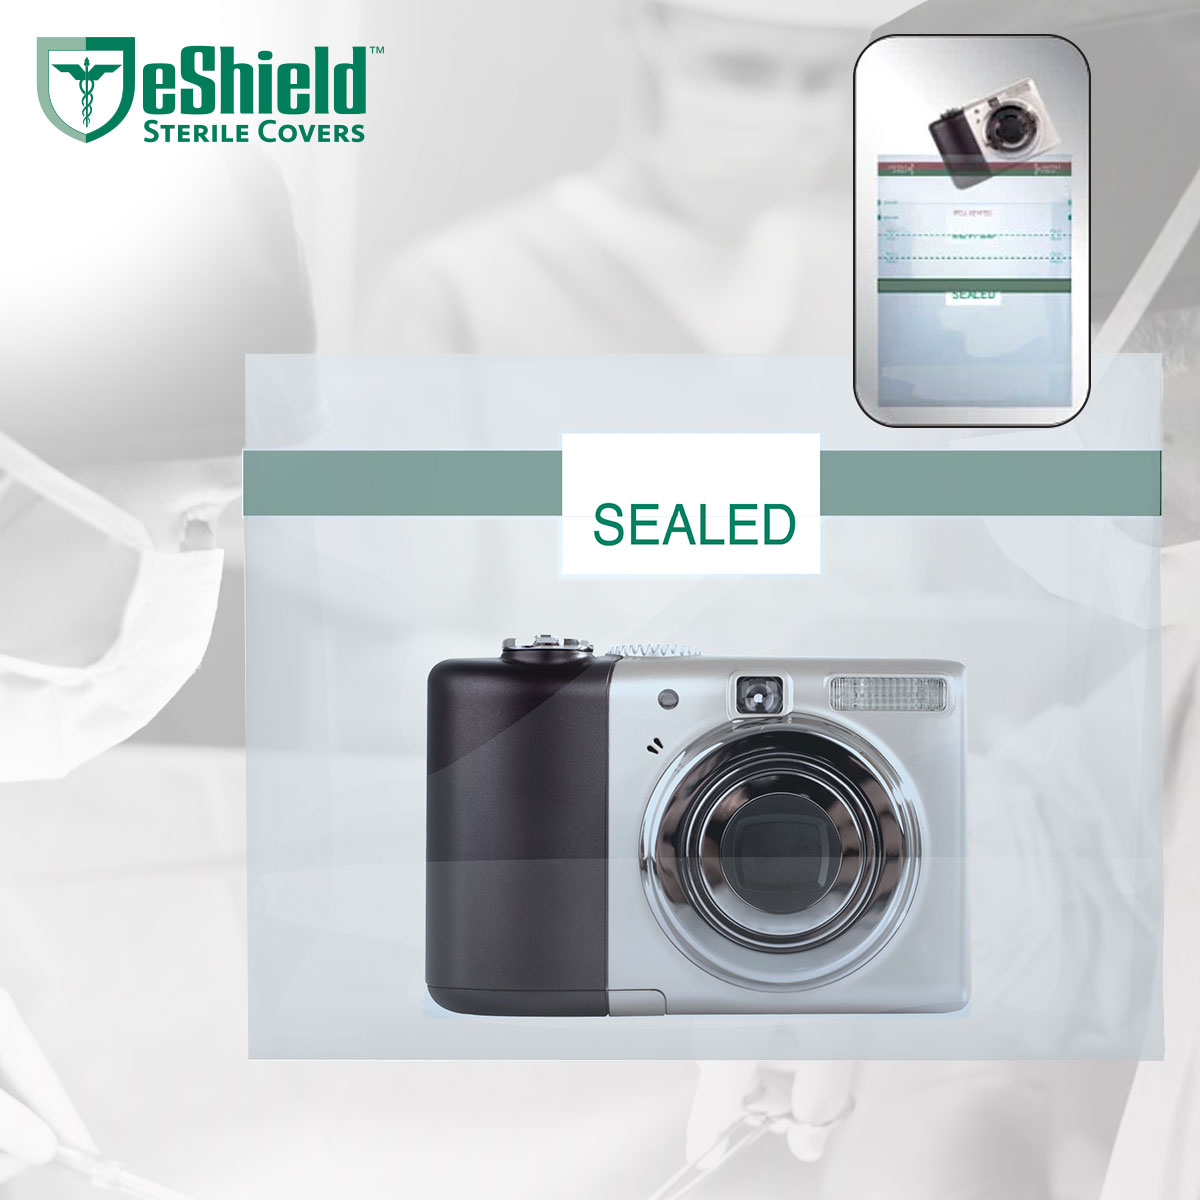 04A-eShield-Sterile-Electronic-Cover-Digital-Camera-Web-1